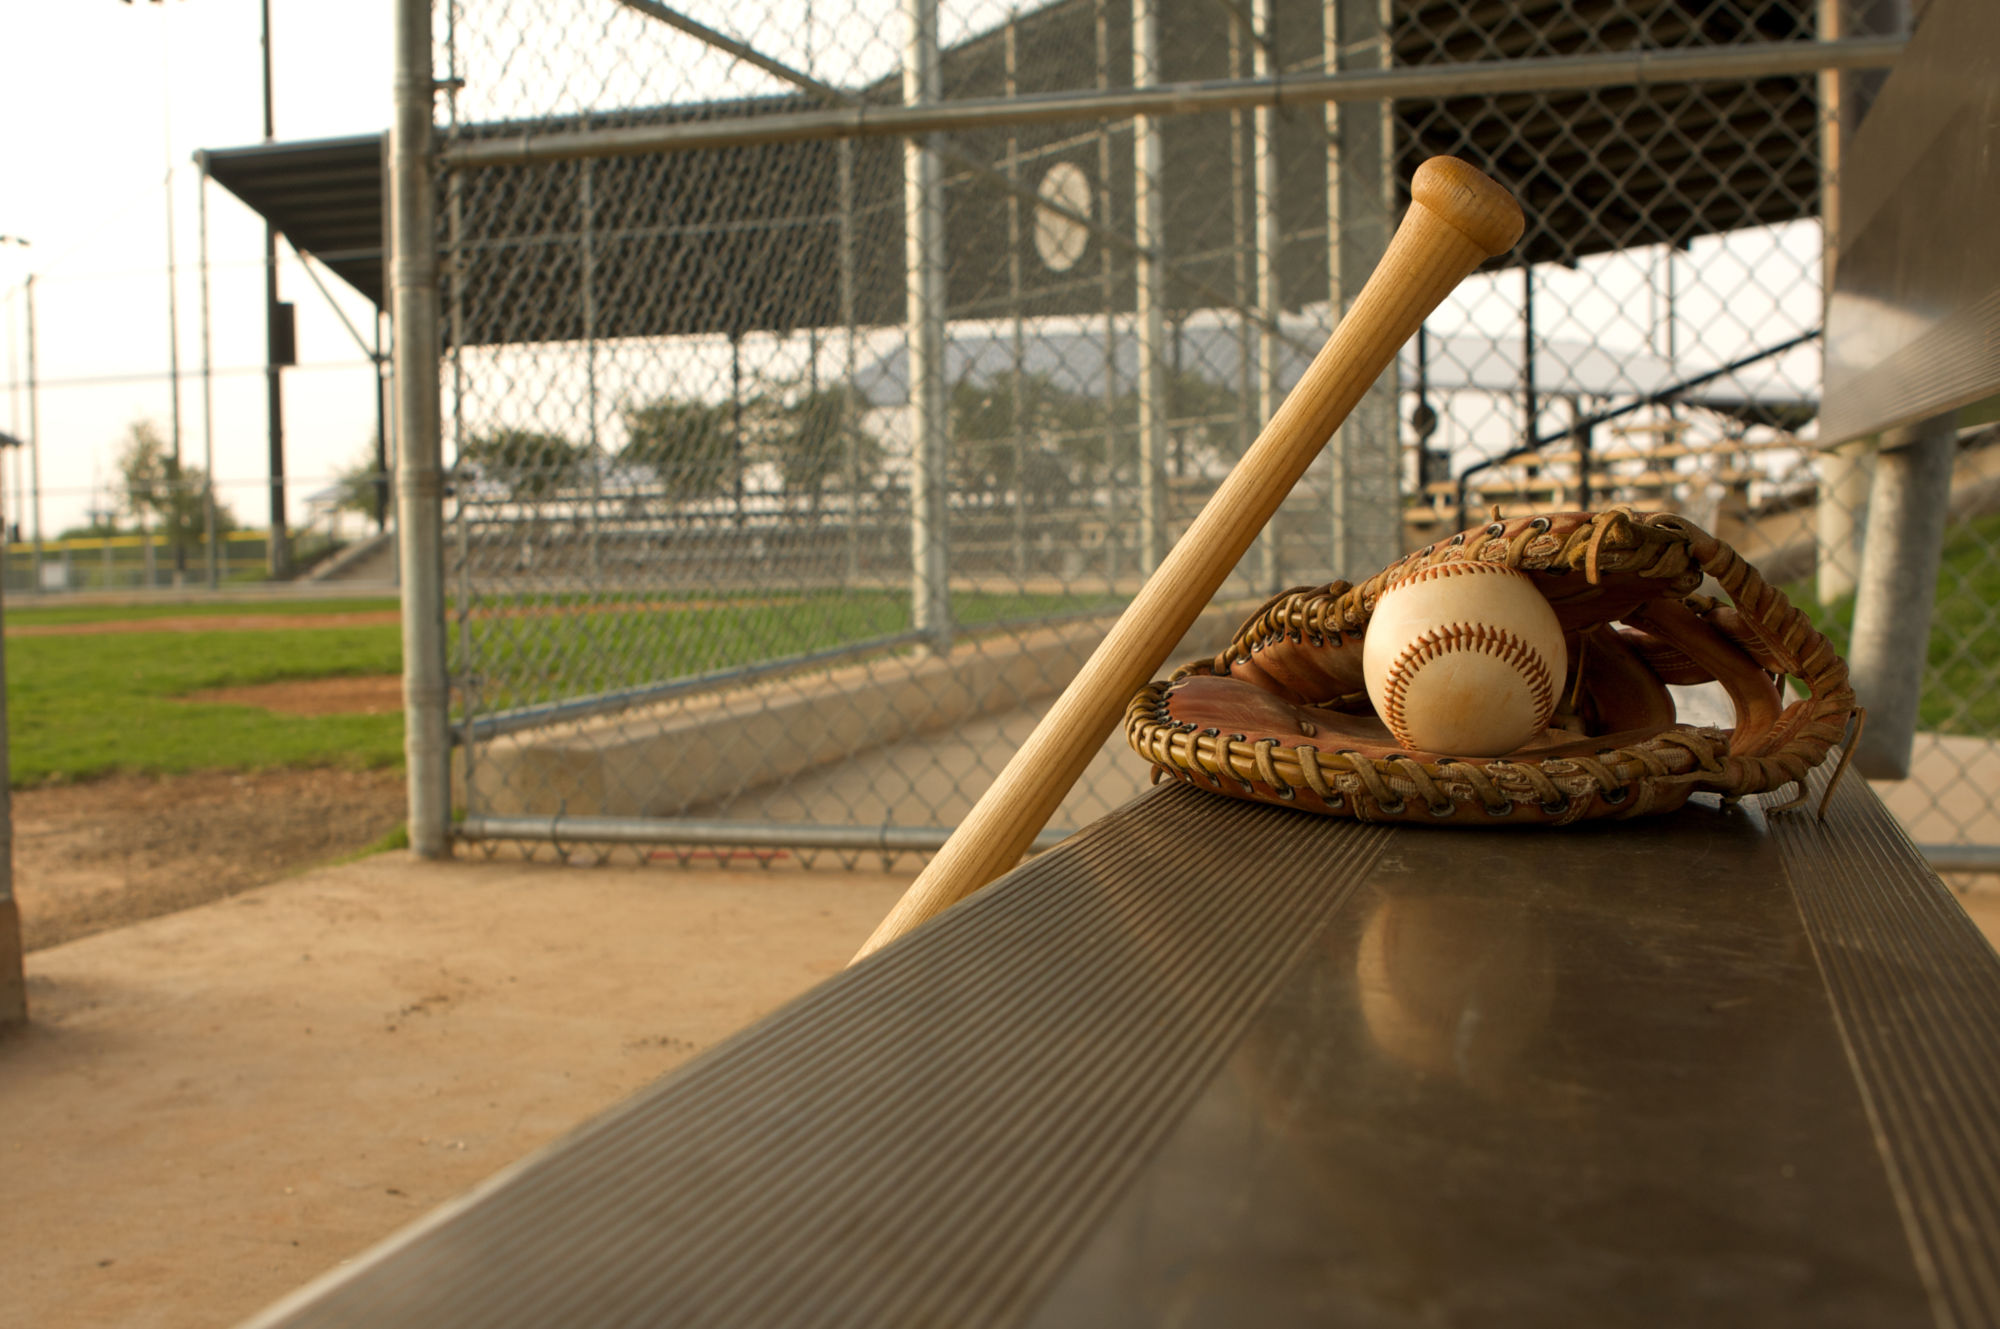 Baseball Glove, Ball, and Bat in Dugout -- David Lee/Shutterstock.com